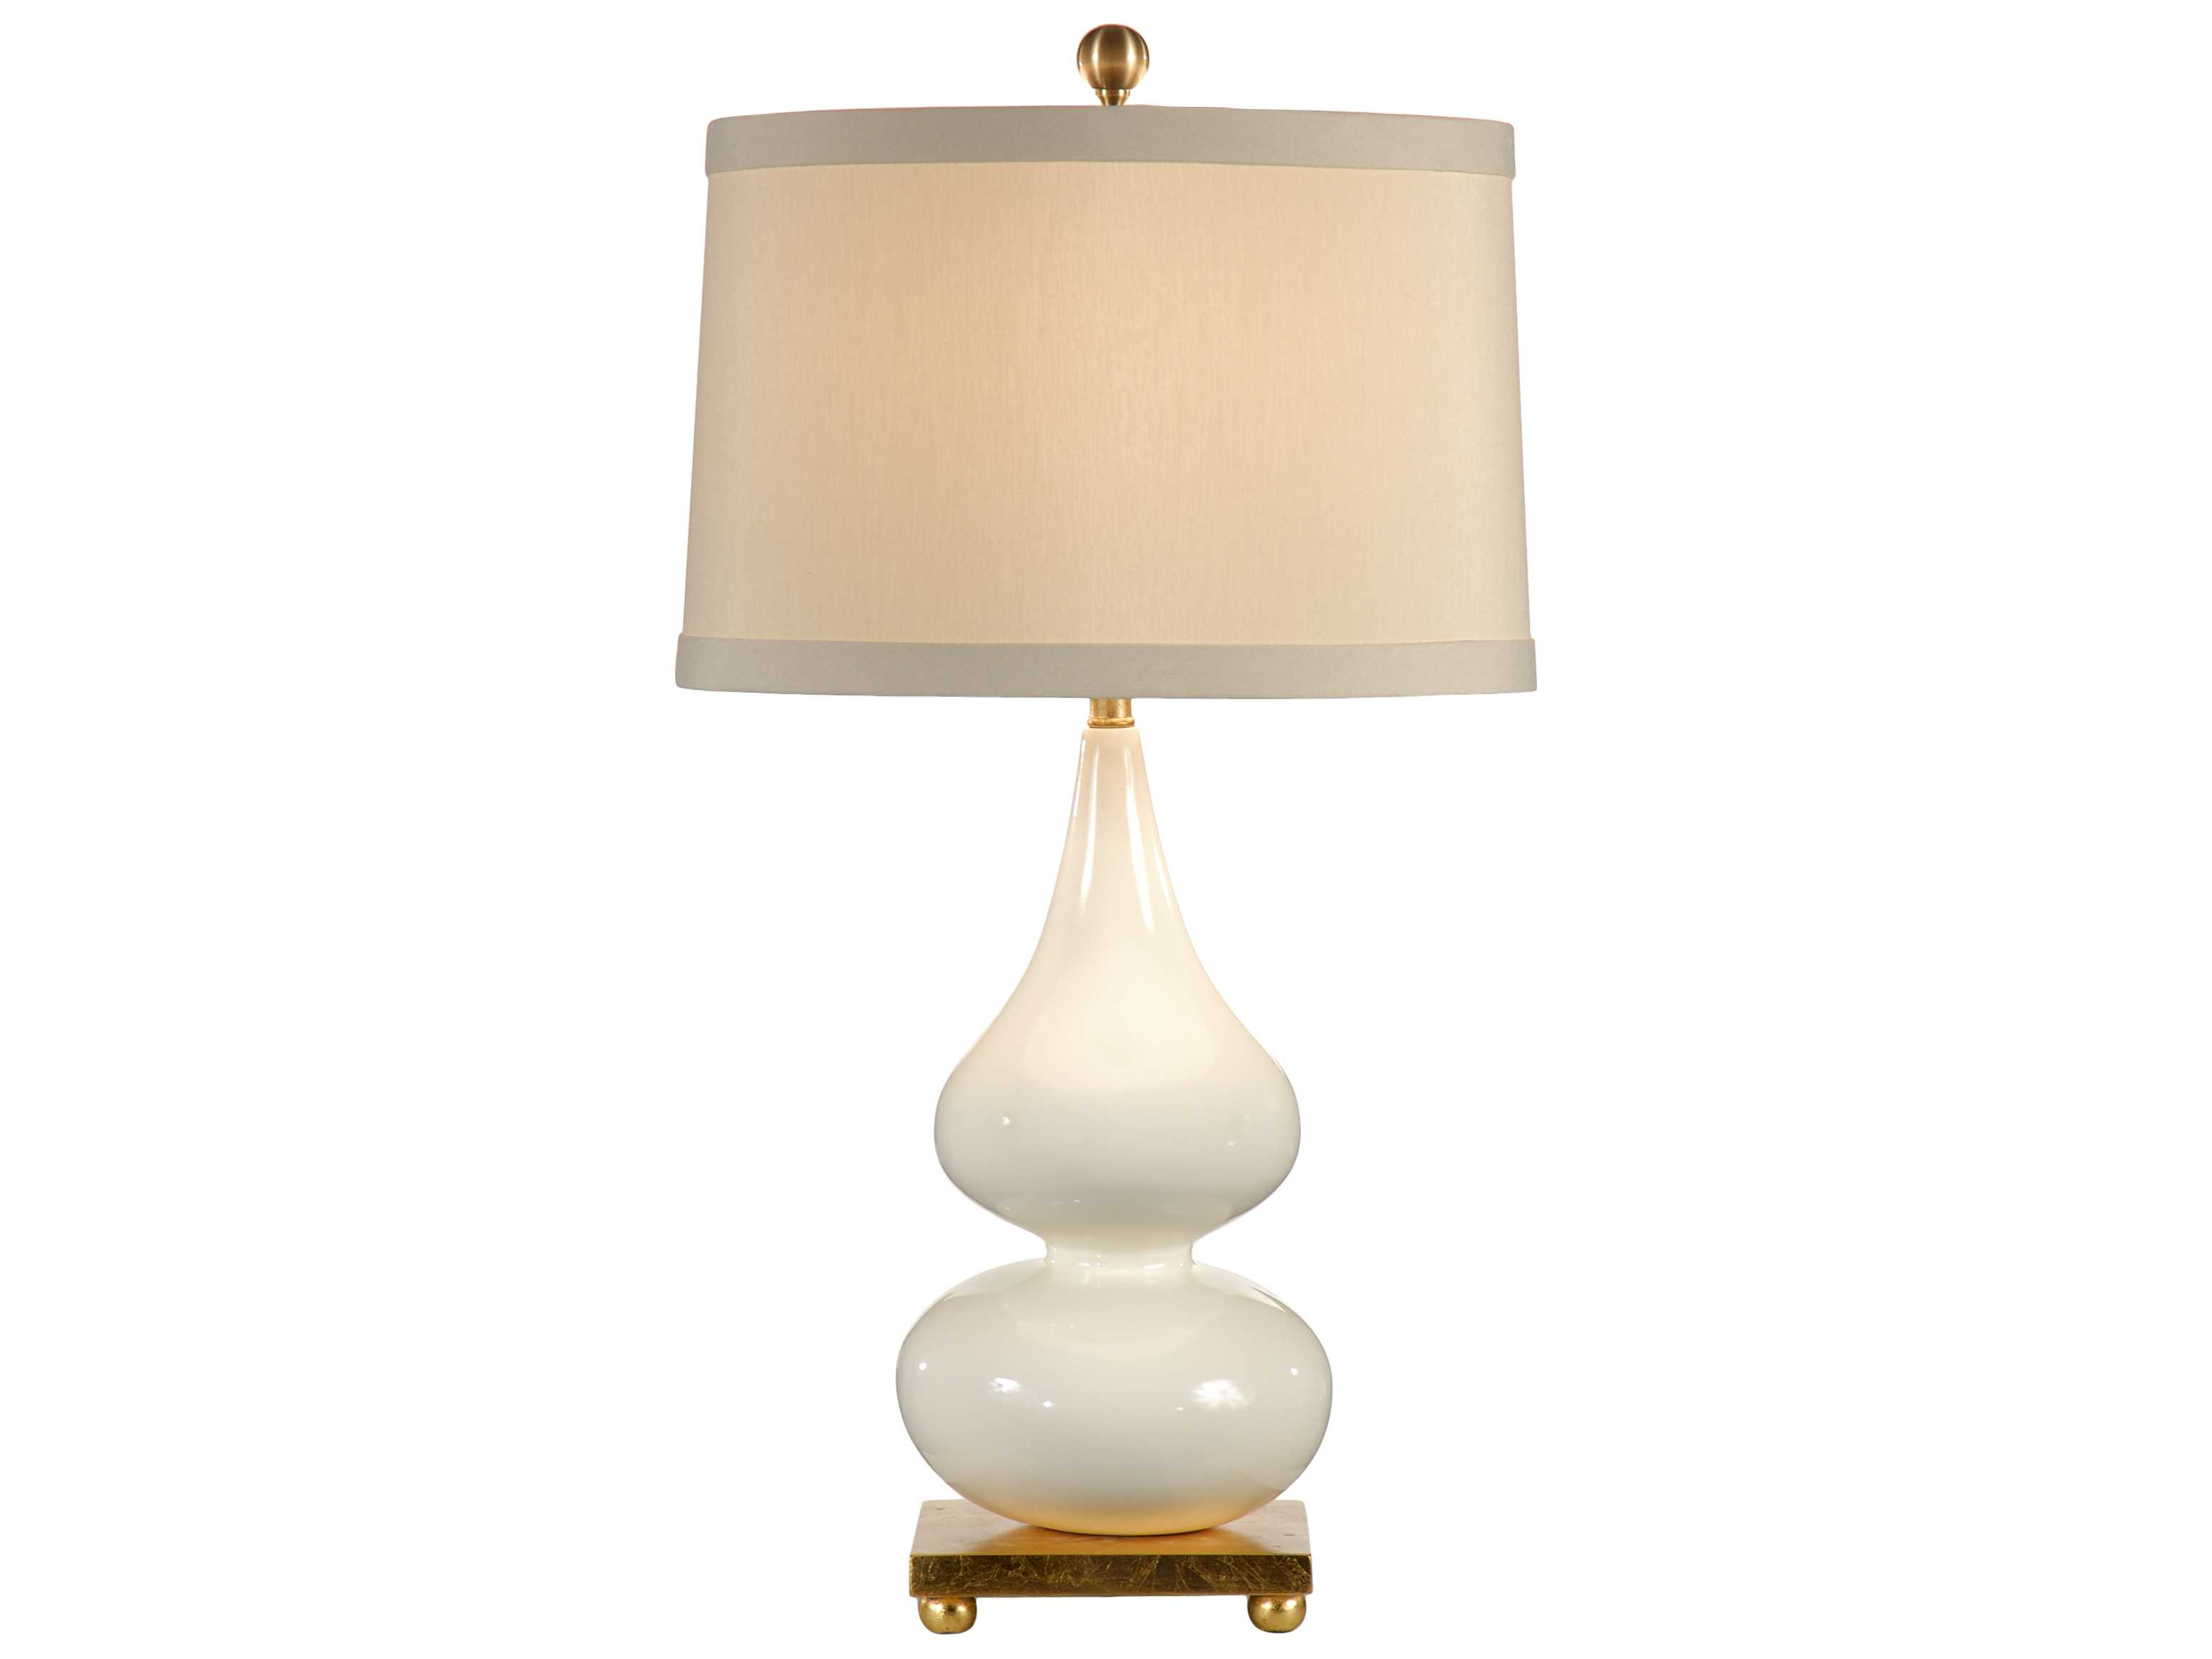 Exceptionnel Wildwood Lamps Milk Glaze On Porcelain Old Gold Leaf Pinched Vase Table Lamp  ...